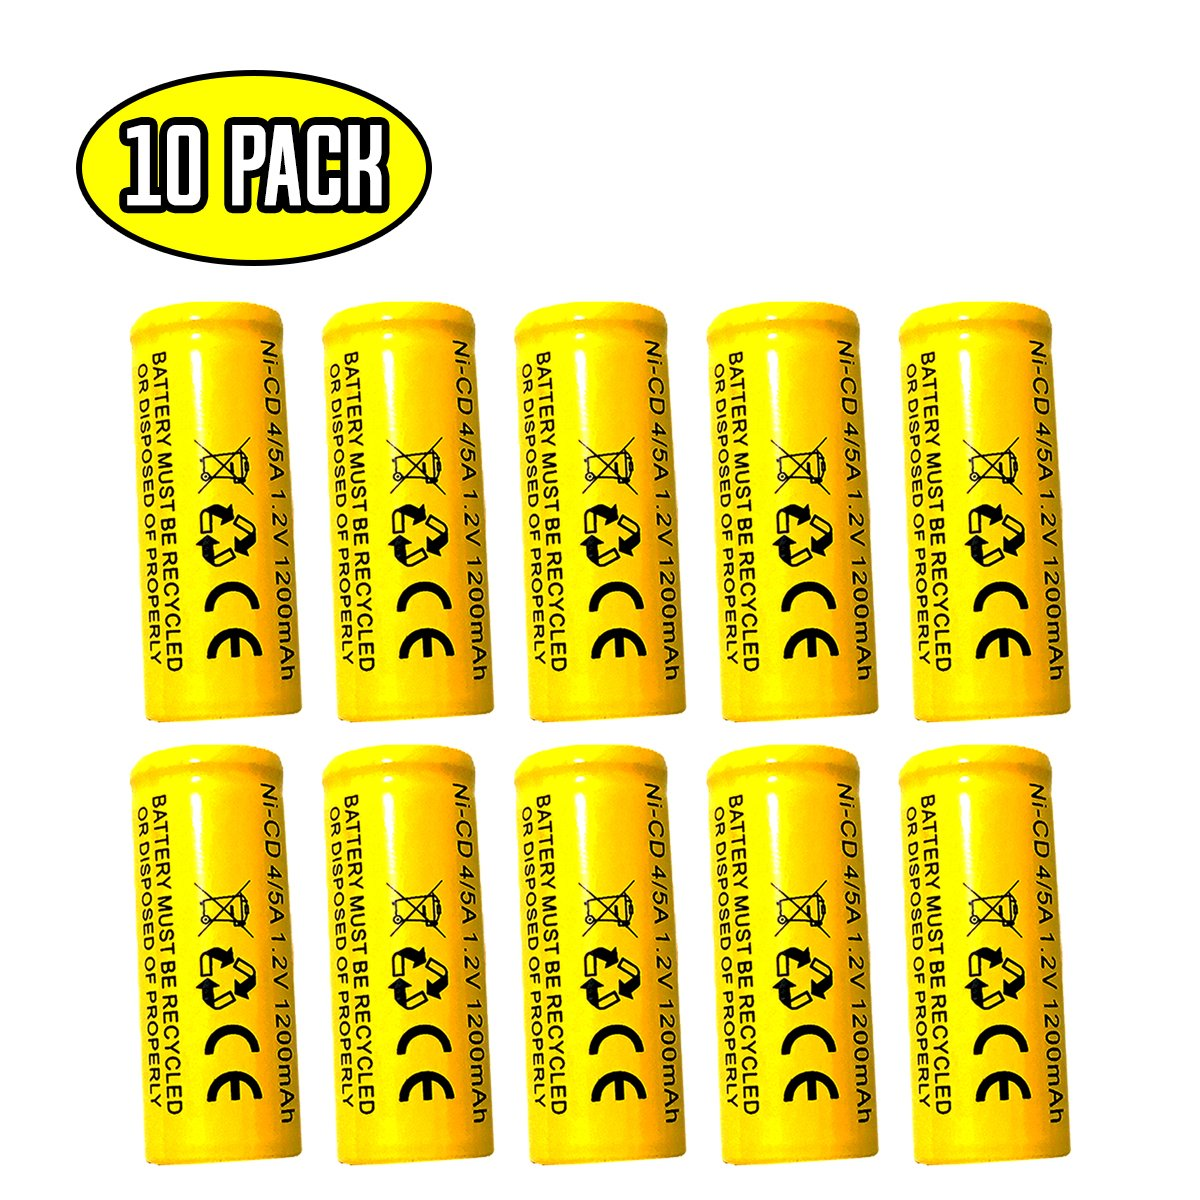 (10 pack) Lithonia LES ELN LRES ELN Lithonia ELB1201N 1.2v 1200mah Ni-cd Battery Replacment for Exit Sign Emergency Light ELB-1210N ELB-1201N Sanyo KR-1200AUL KR1100AE KR-1500AUL by Battery Hawk